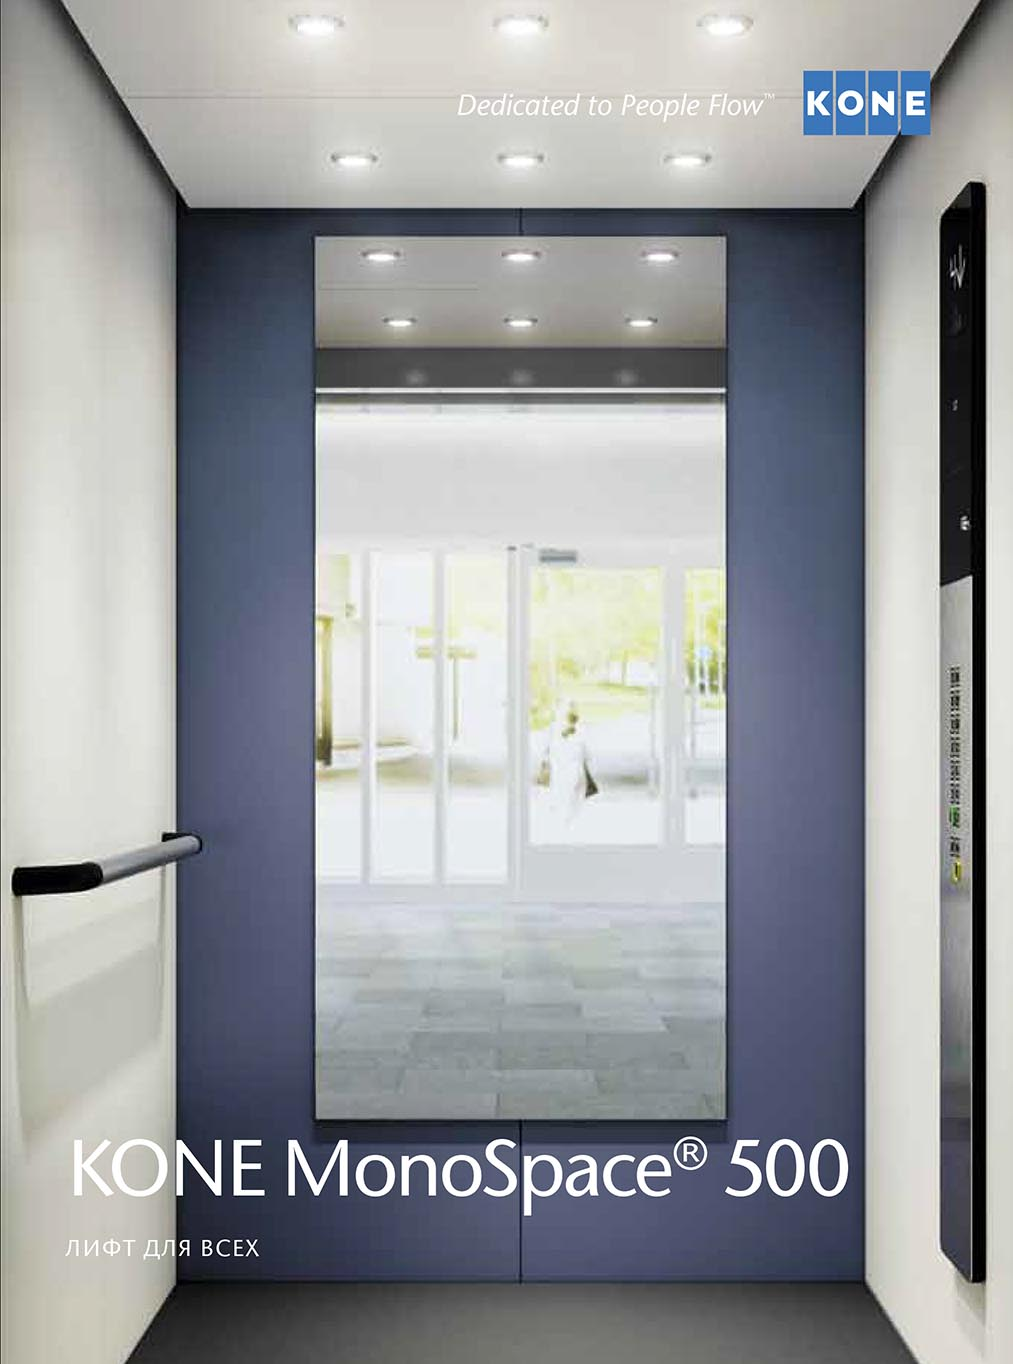 kone monospace 500. Black Bedroom Furniture Sets. Home Design Ideas